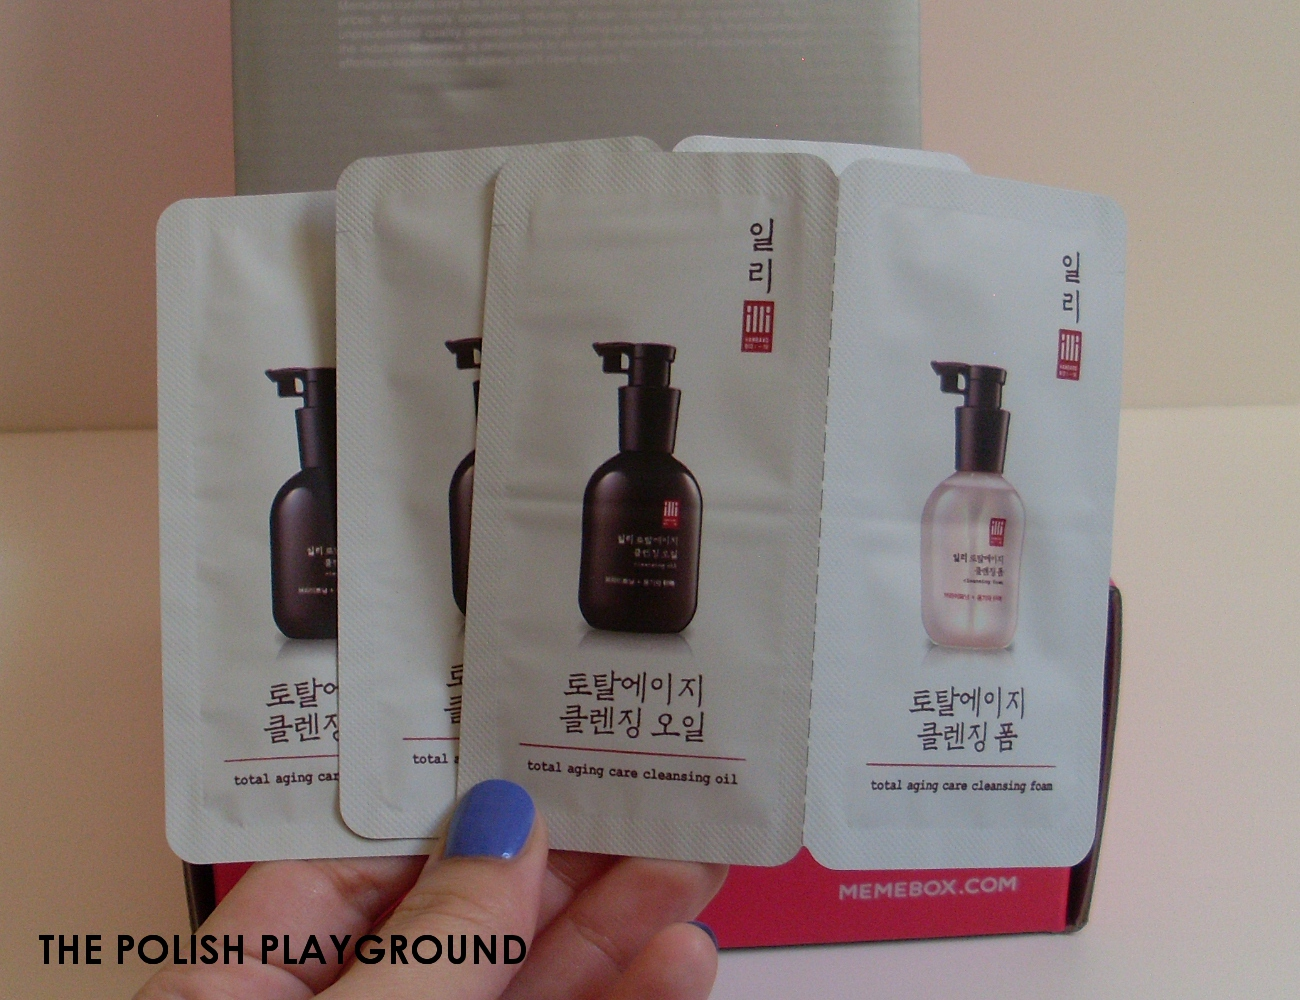 Memebox Minibox #3 Unboxing - illi Cleansing Oil and Foam Set